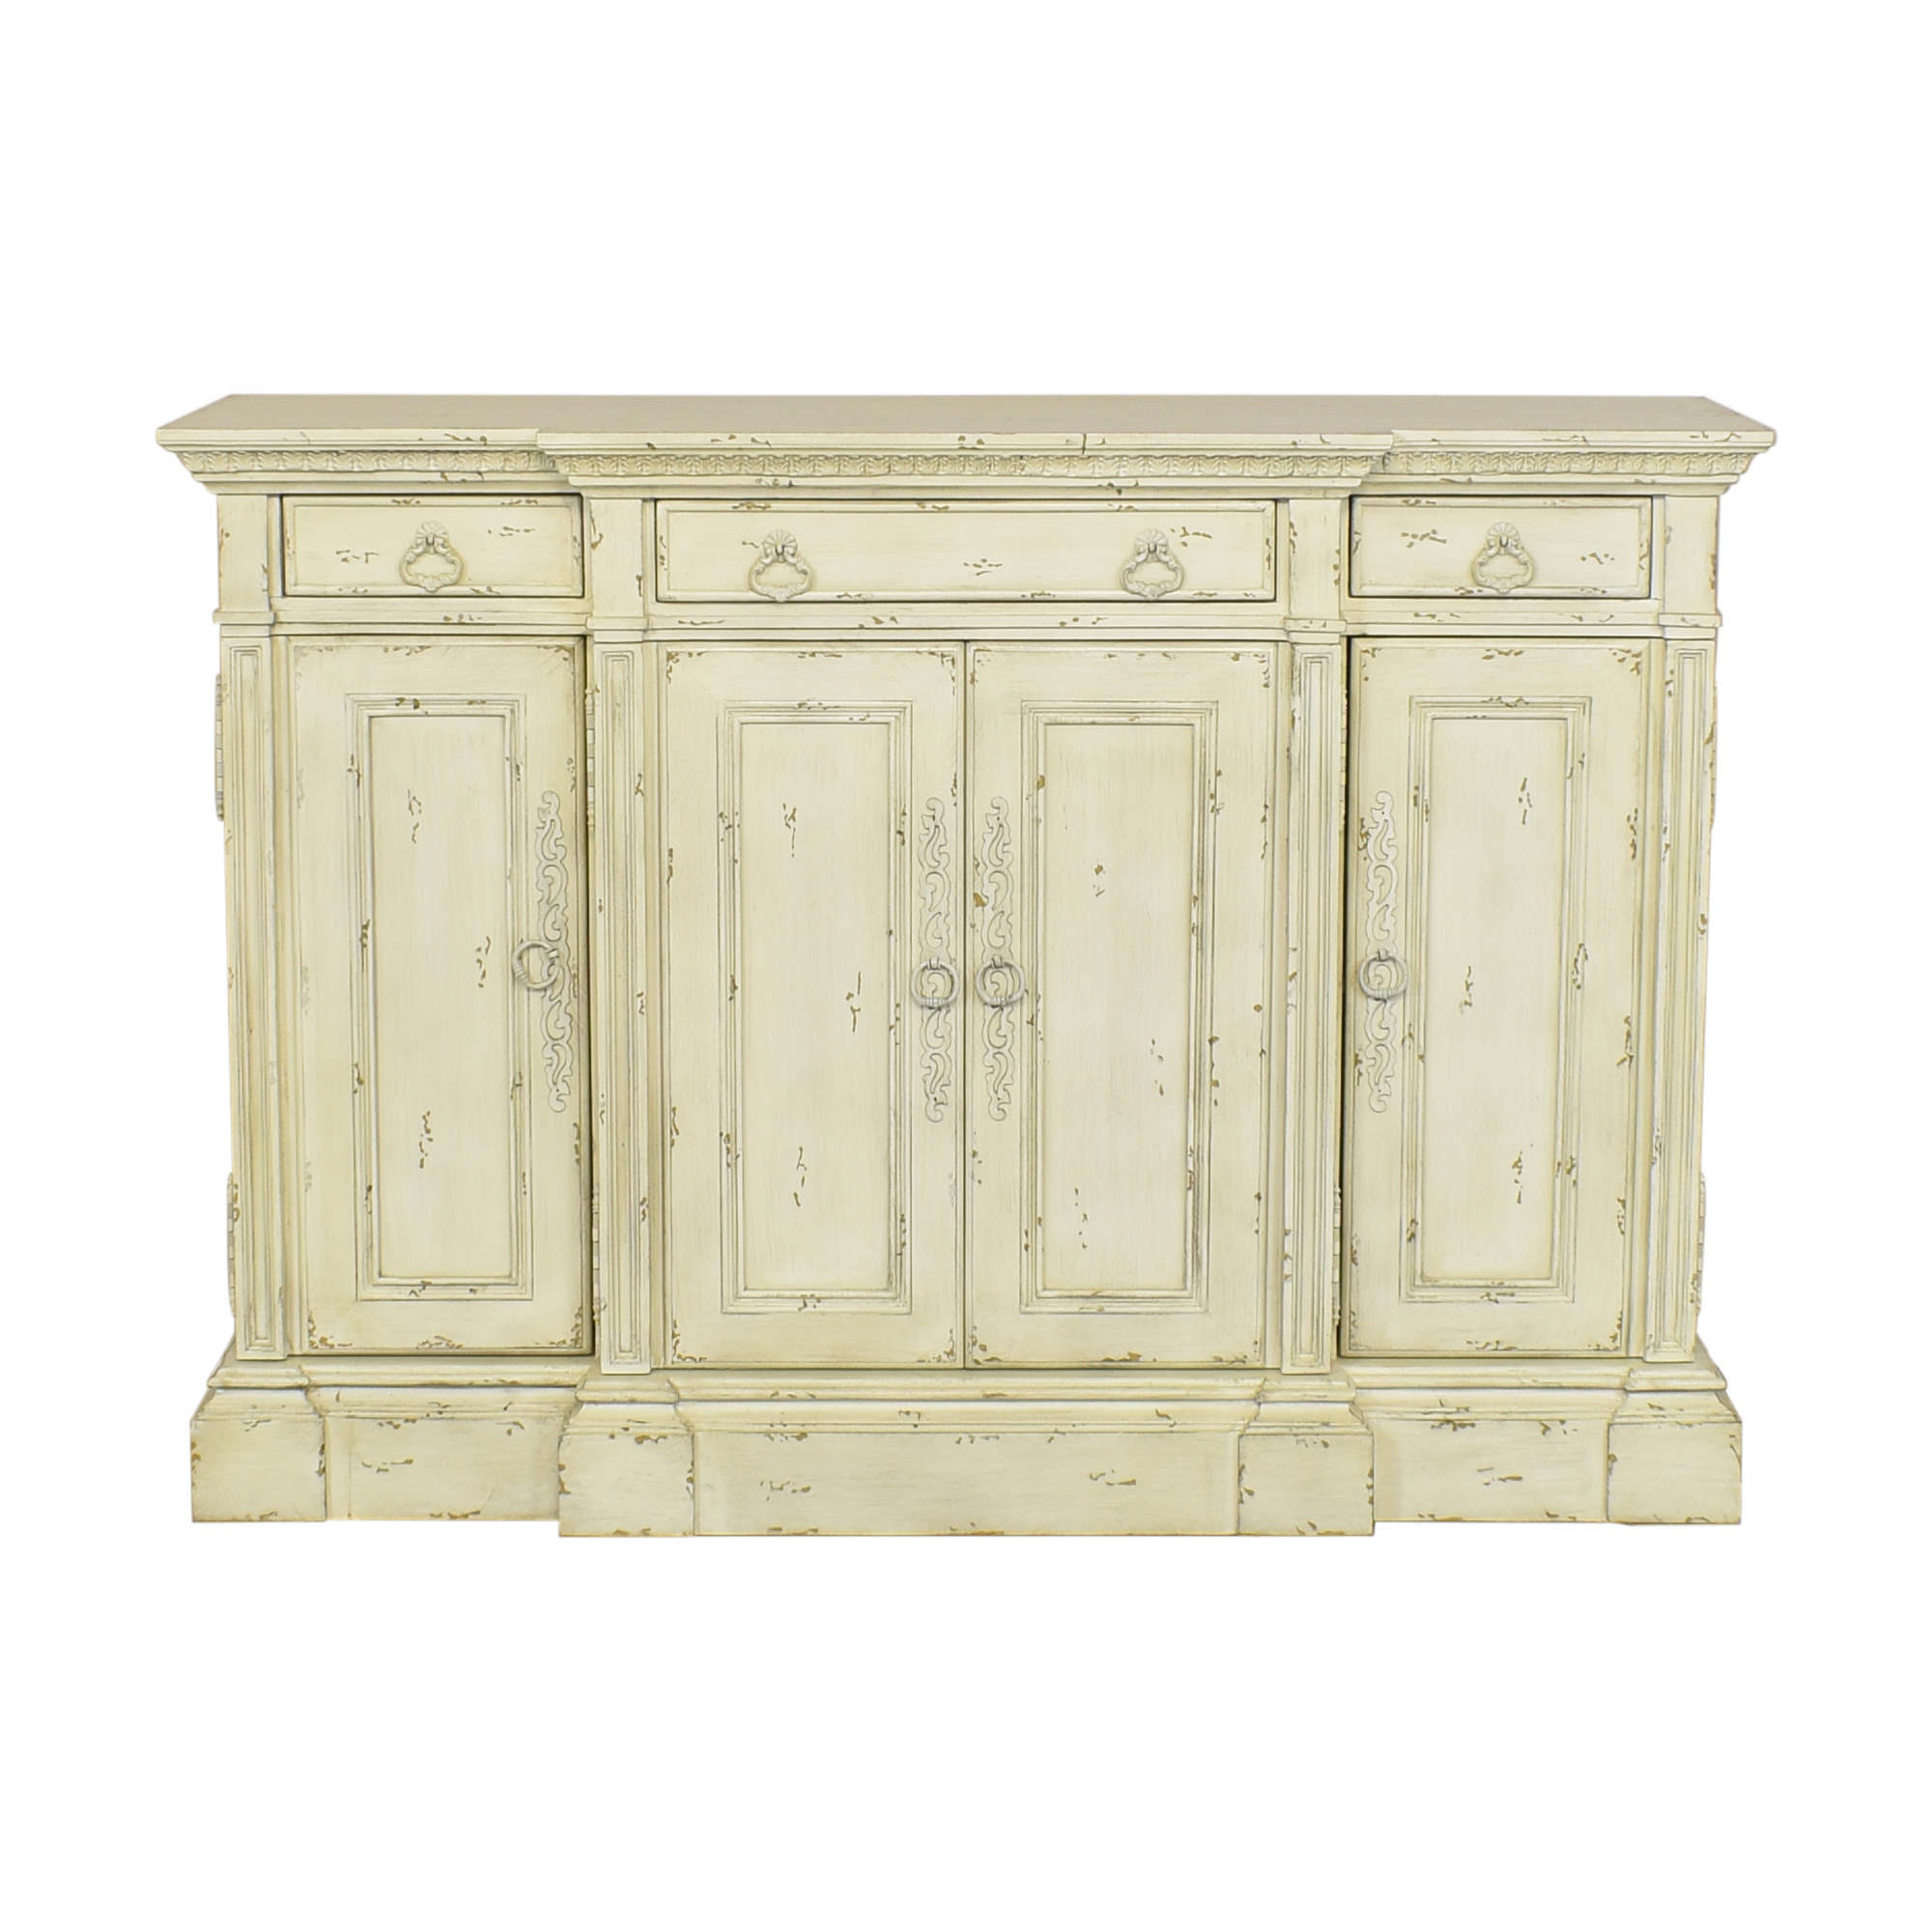 Wayfair Ultimate Accents Kingston Credenza sale